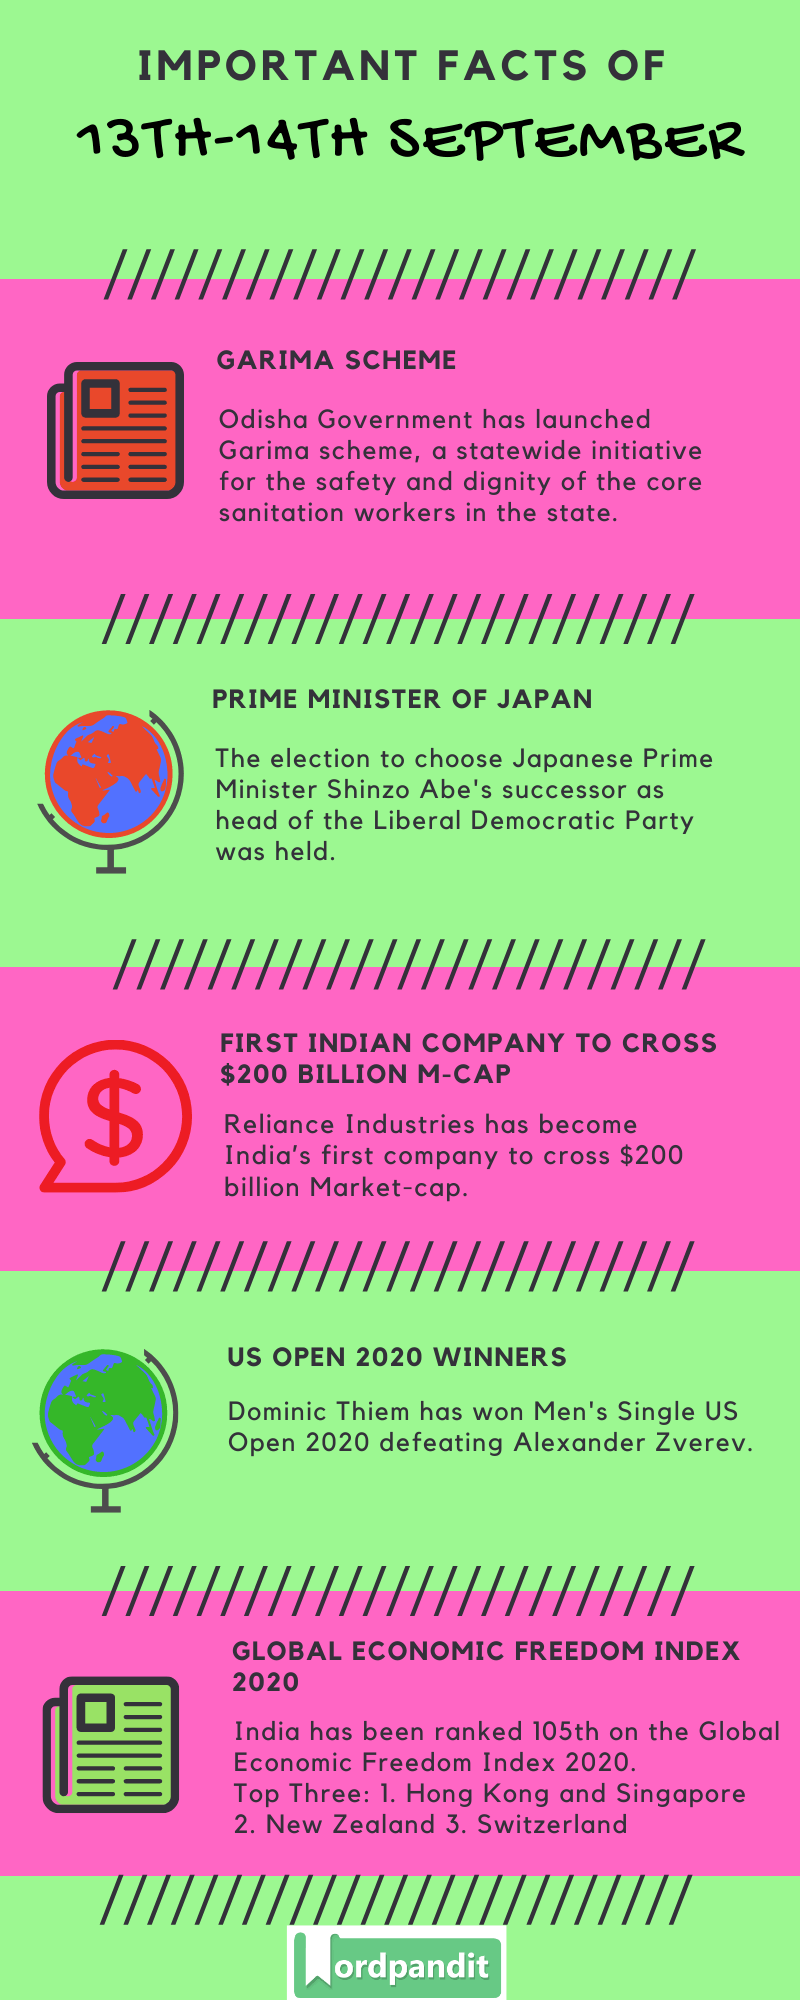 Daily Current Affairs 13th-14th September 2020 Current Affairs Quiz 13th-14th September 2020 Current Affairs Infographic